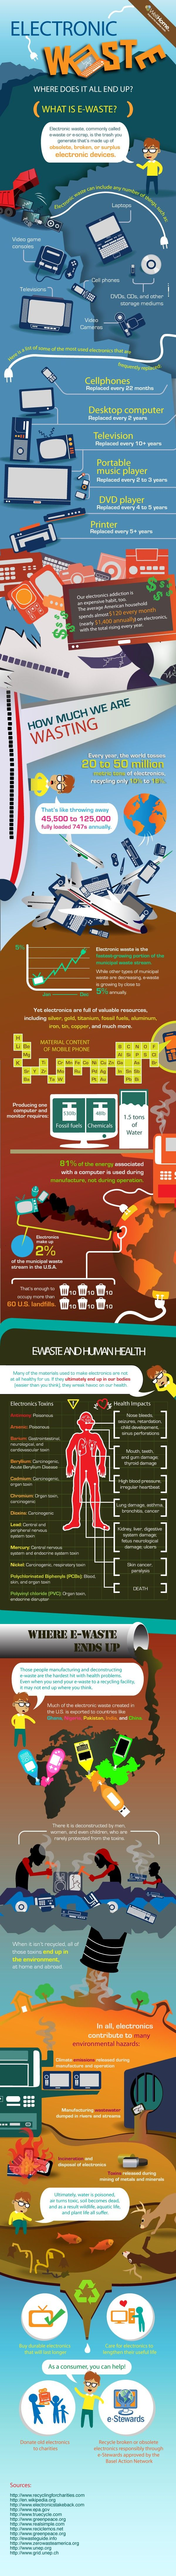 Infographic - Electronic Waste Where Does it All End Up